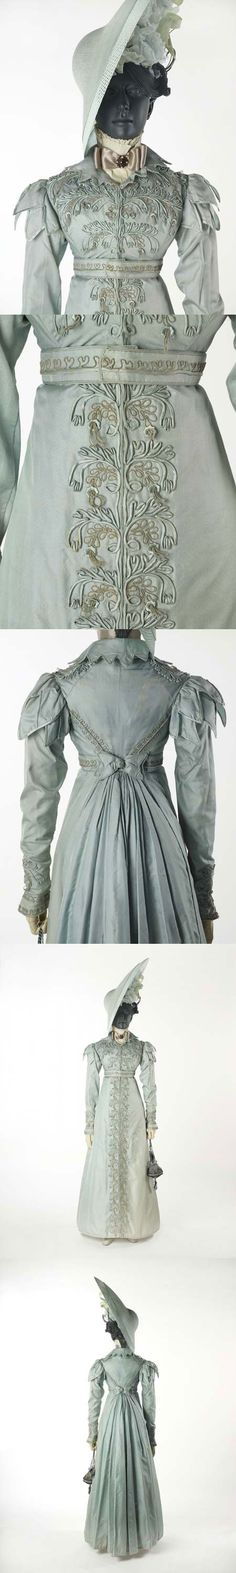 A pelisse. The pelisse was made for a trousseau in 1823 for the wedding of the grandmother of the donor. Museum of London